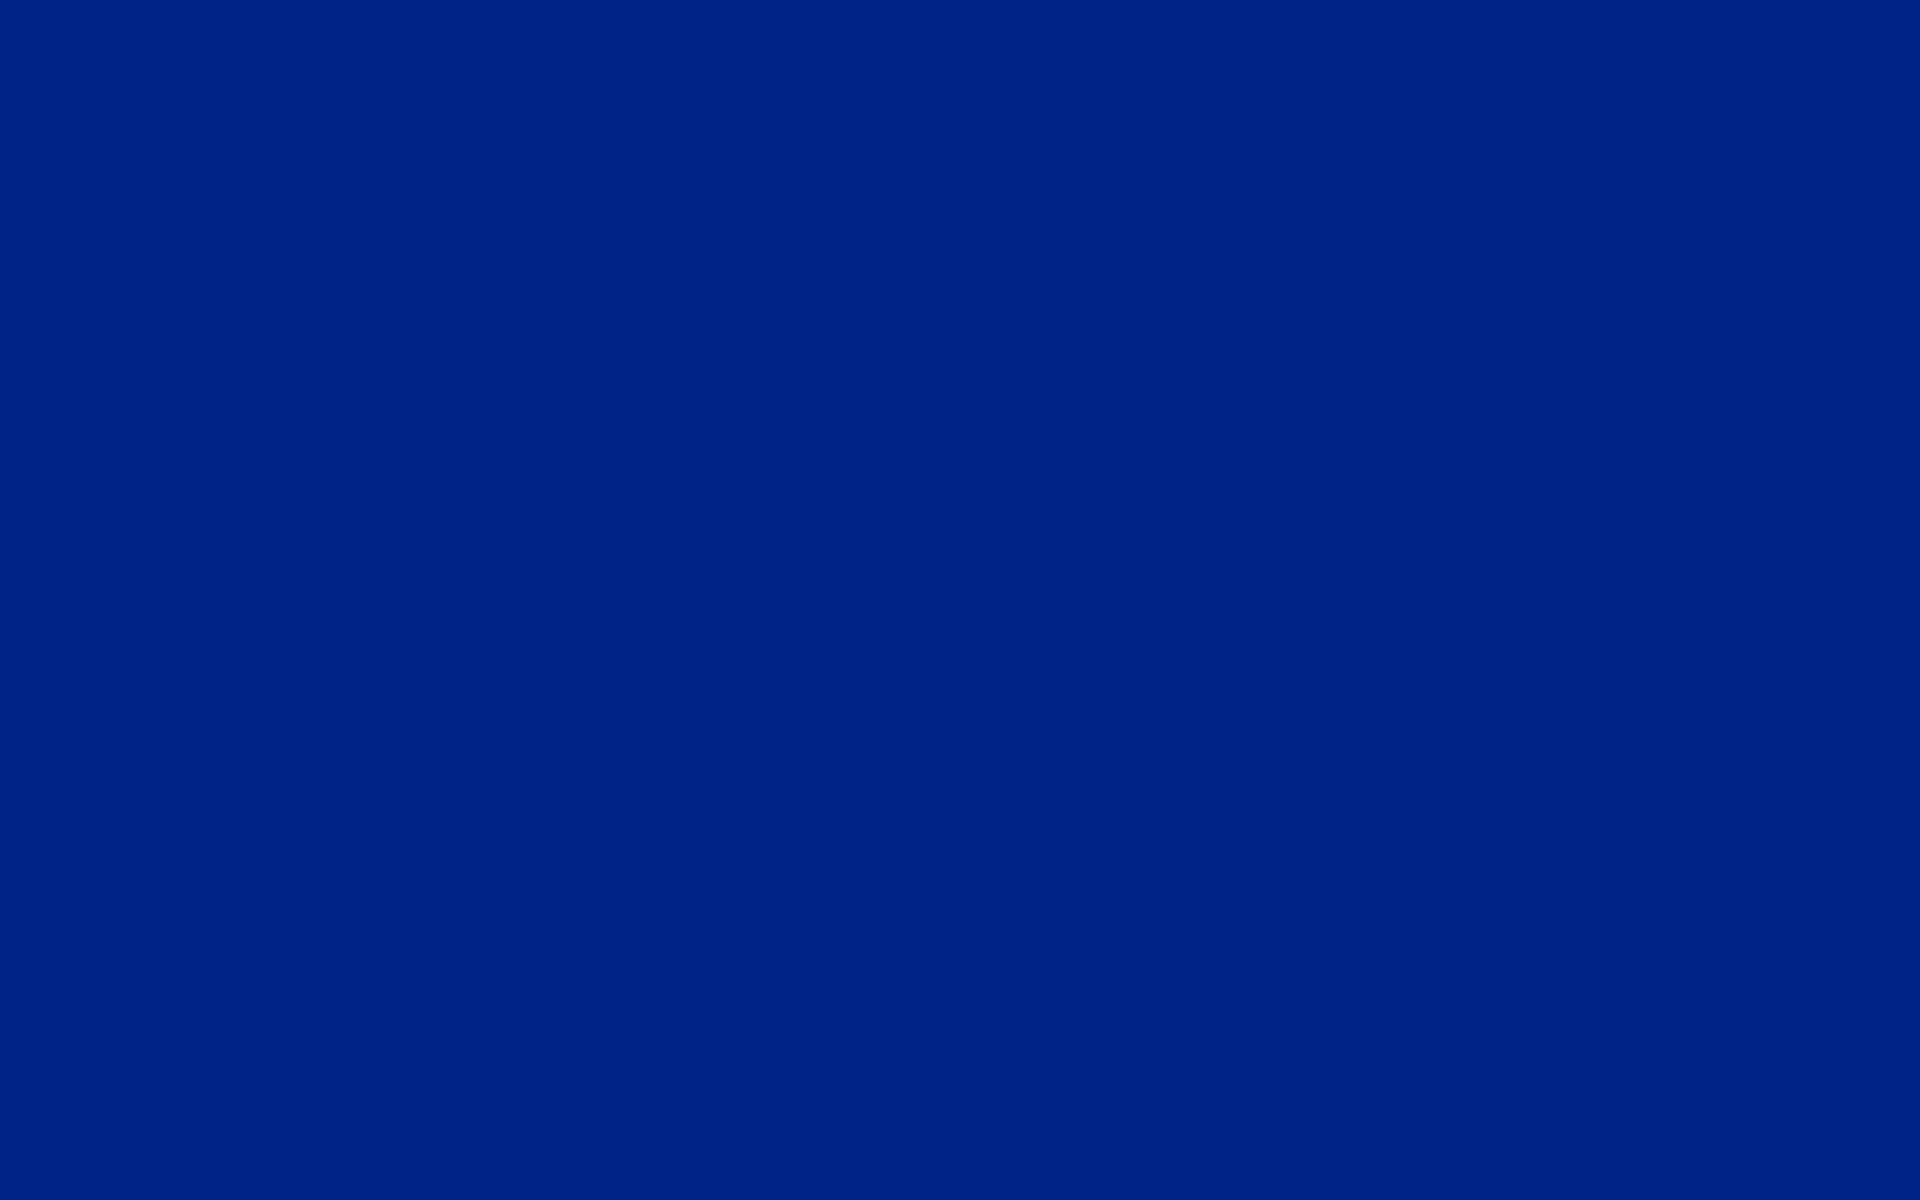 1920x1200 Resolution Blue Solid Color Background